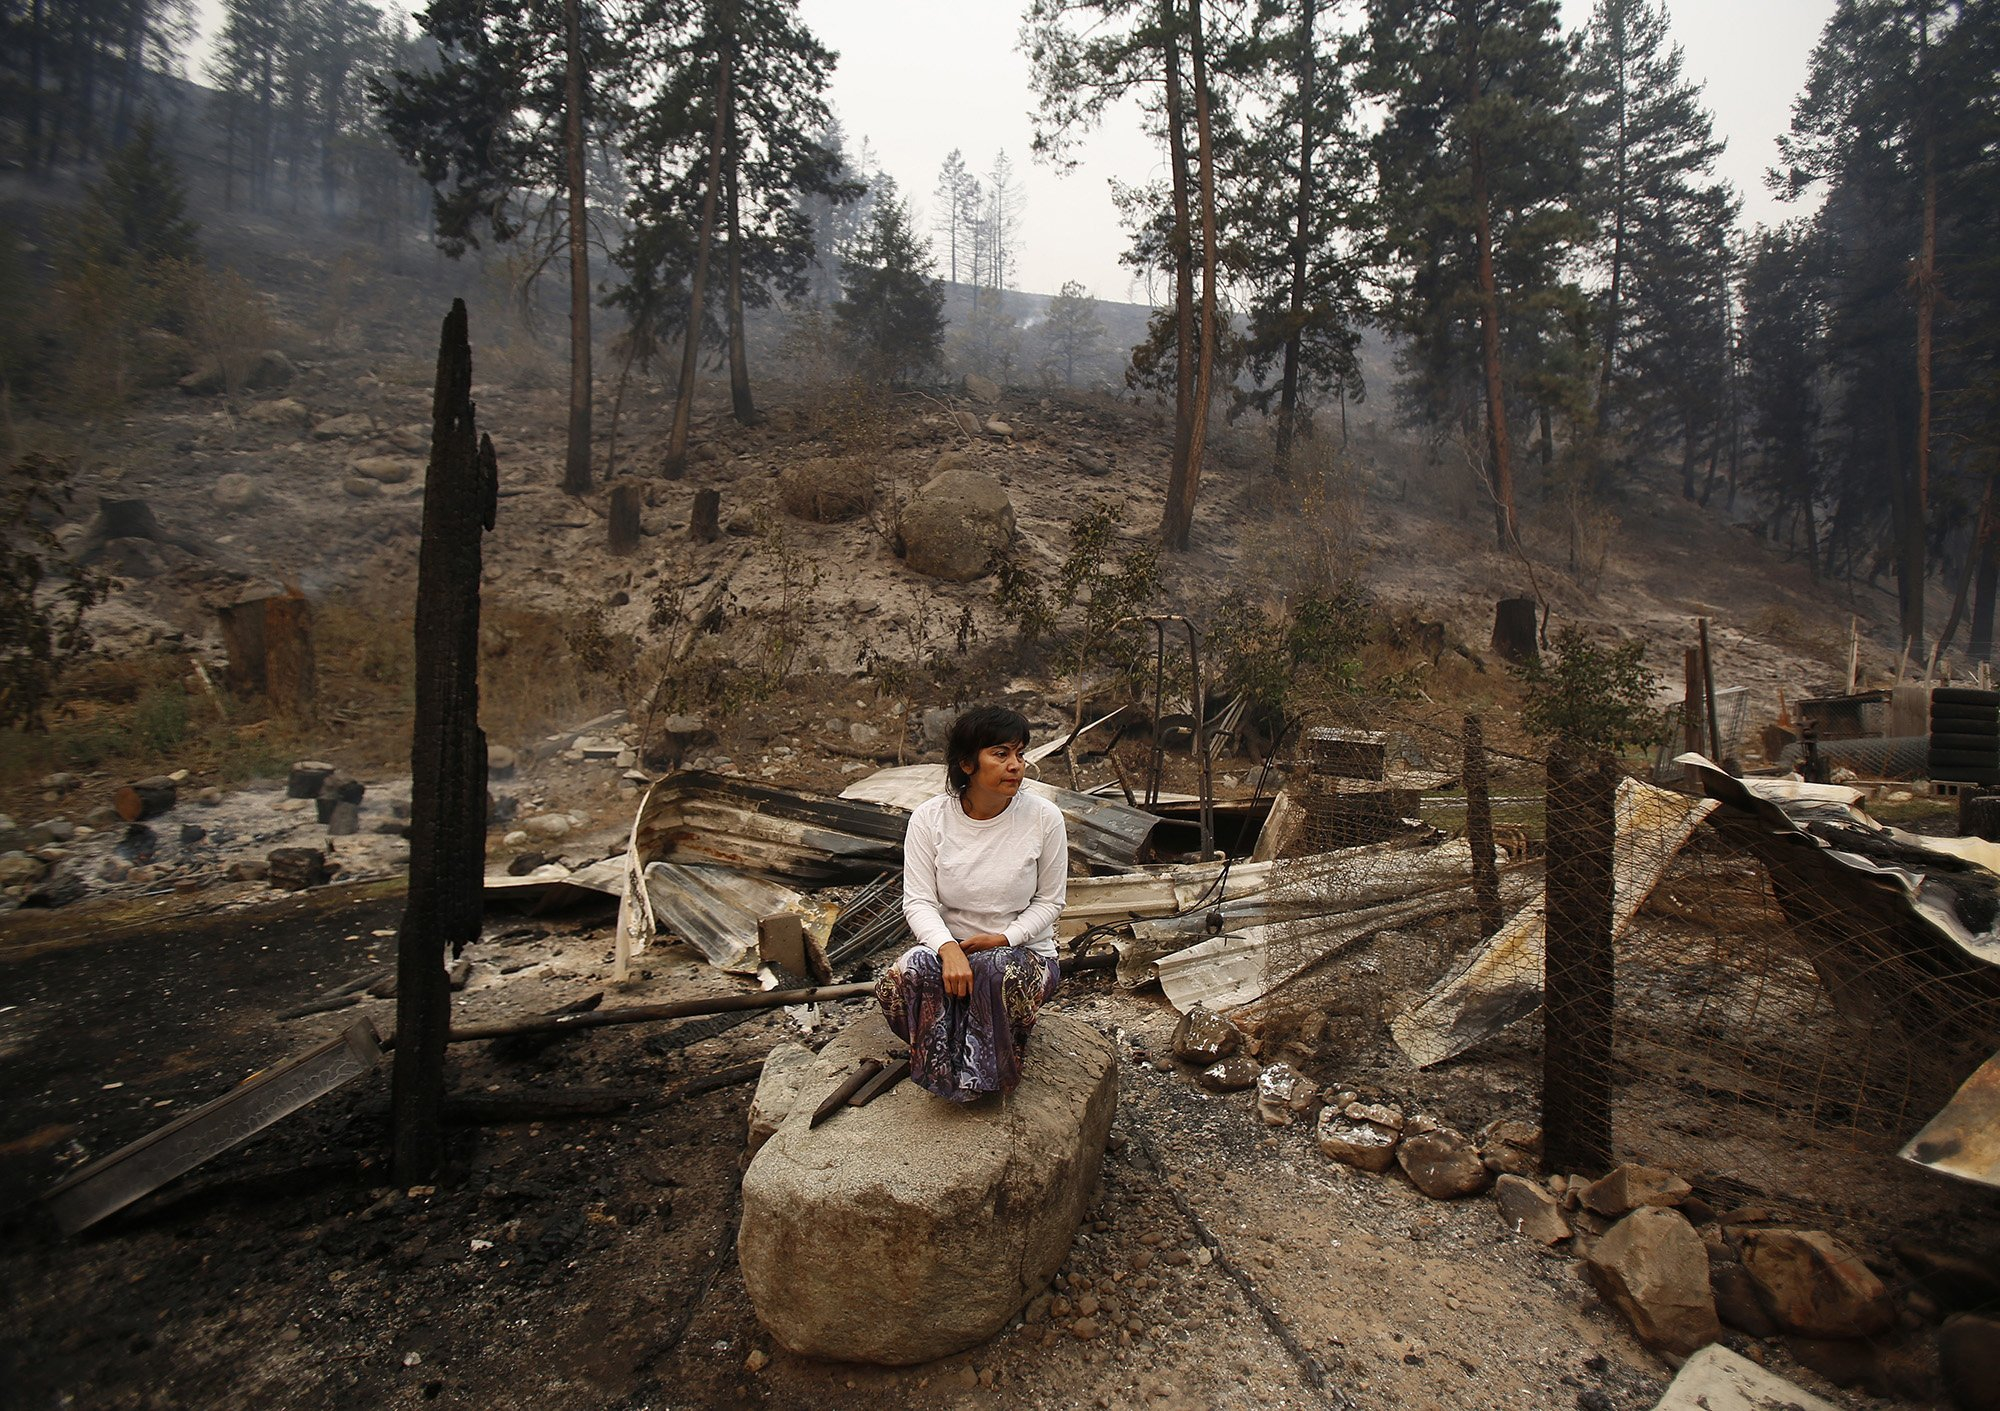 Sandra Gomez sits on amongst the rubble of her home of 30 years that was taken by the fire storm that swept through Antoine Creek the night before, on Saturday, Aug. 15, 2015.